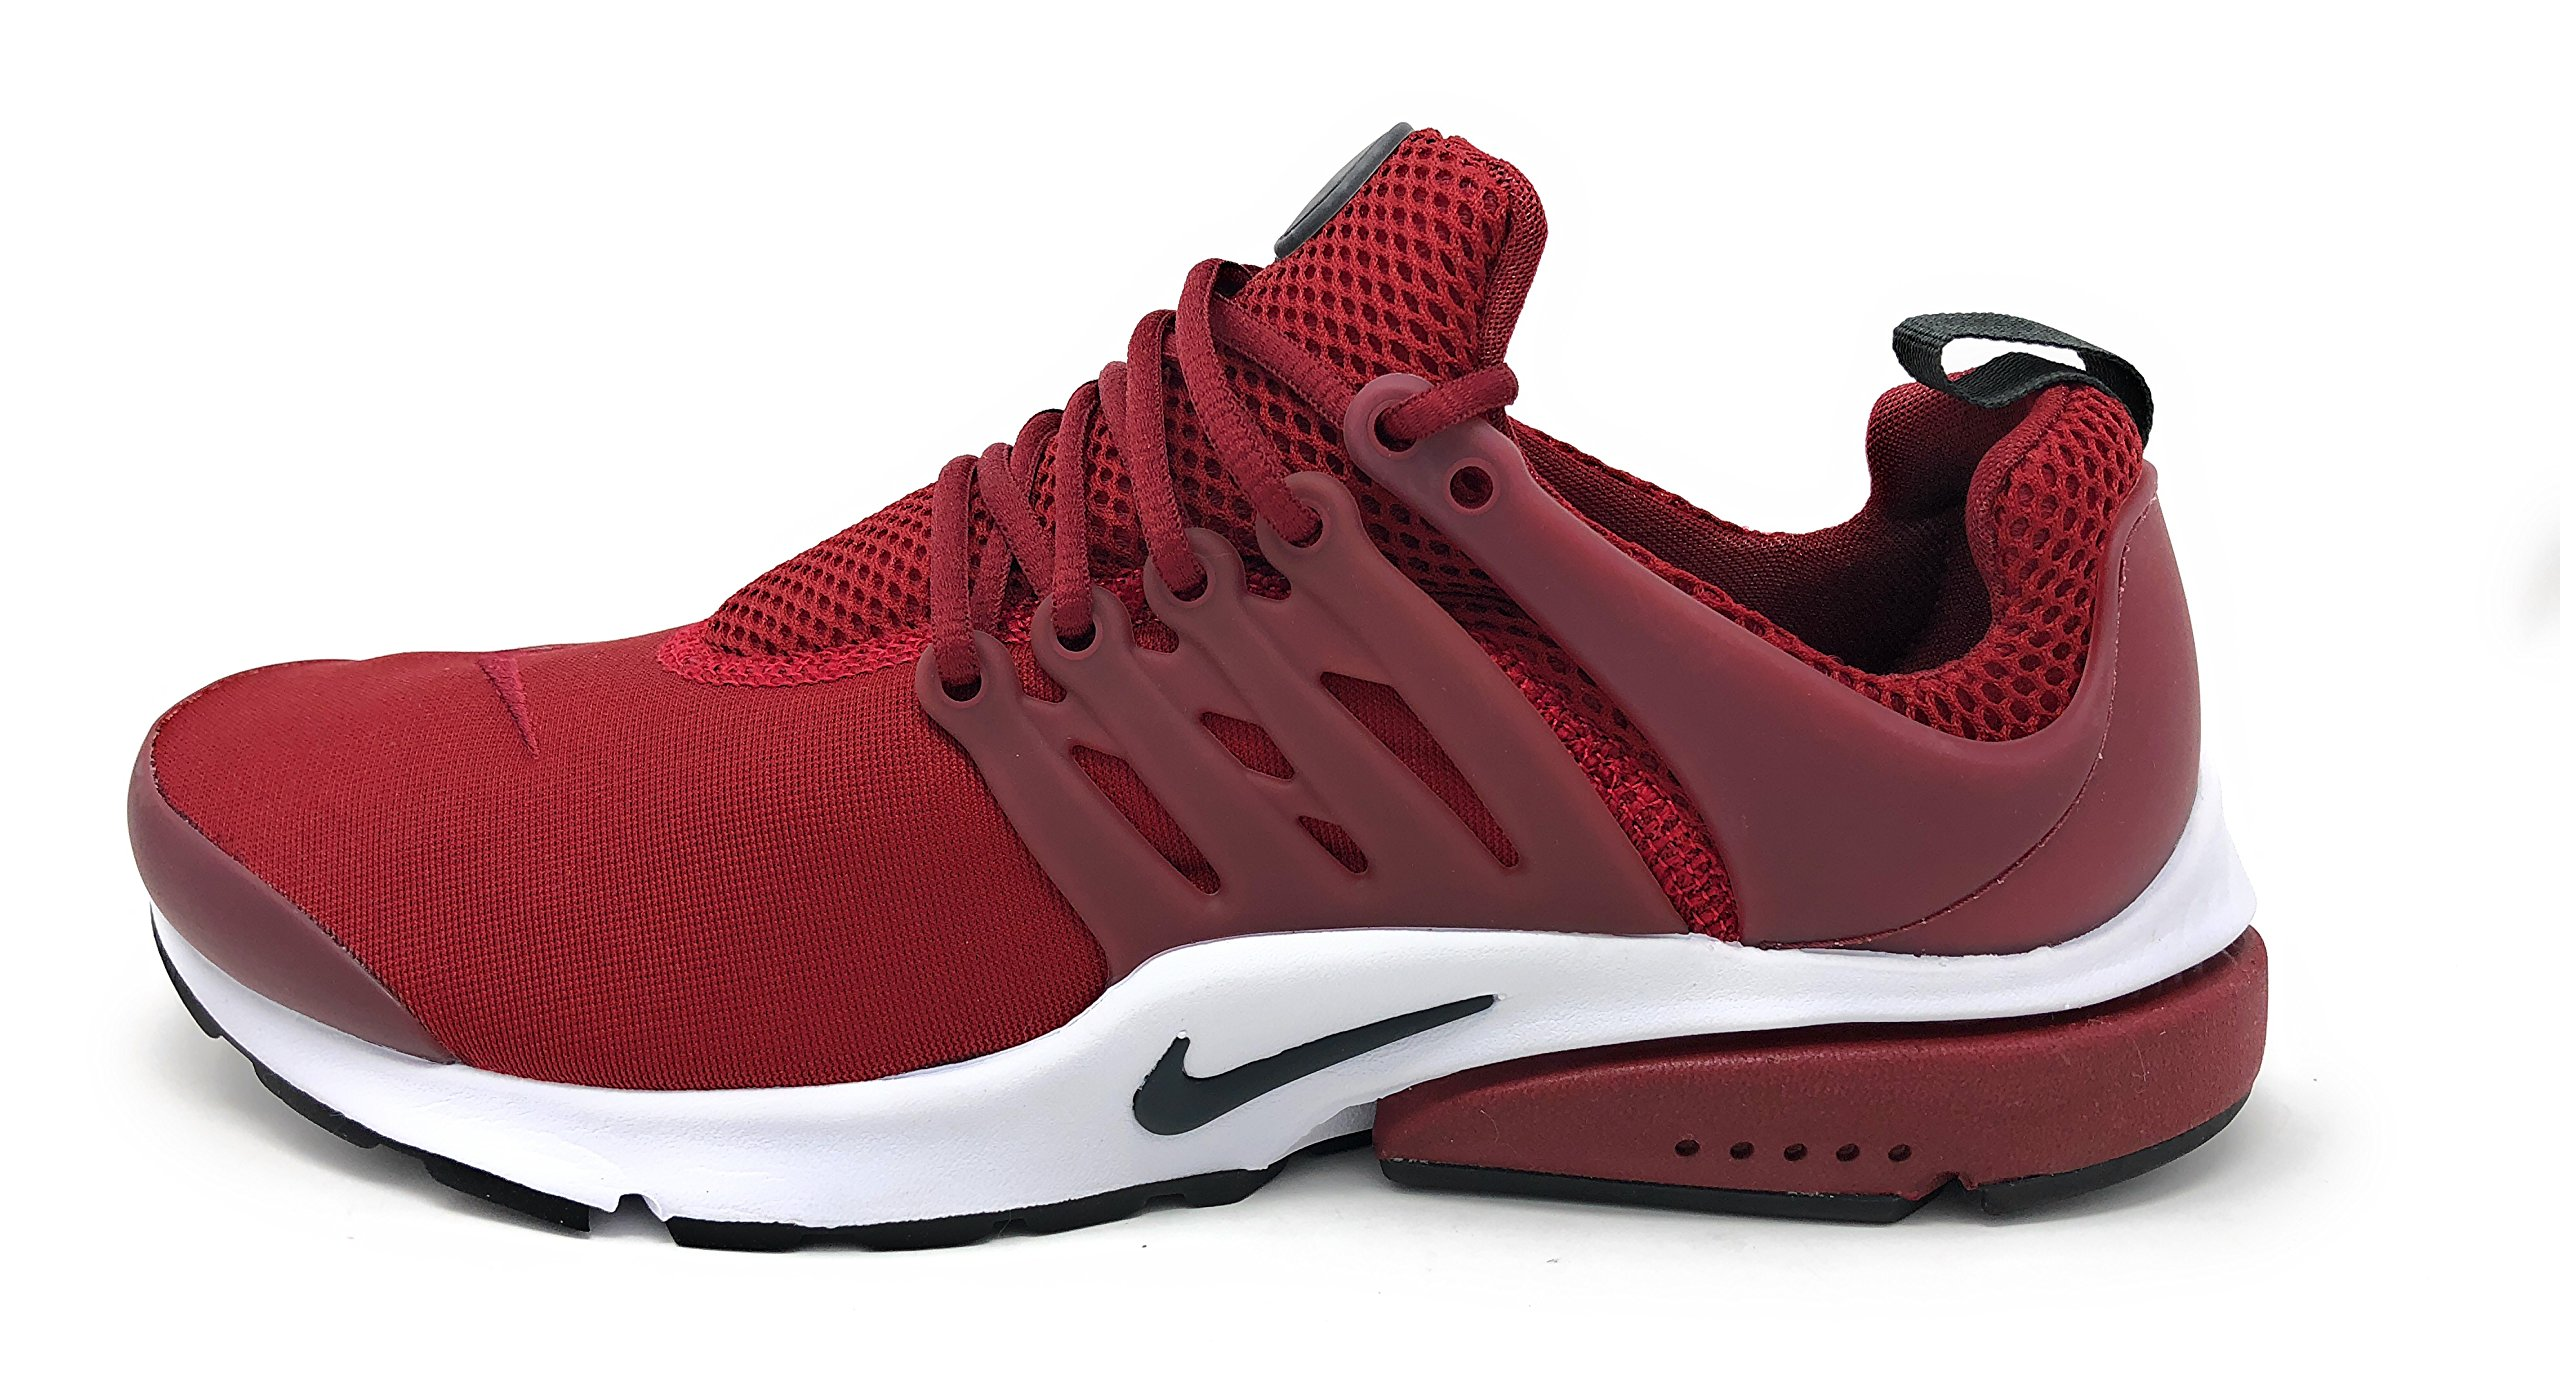 Galleon - NIKE Air Presto Essential Lifestyle Sneakers Mens Team Red Anthracite  New 848187-602 - 11 f8f6414504eb